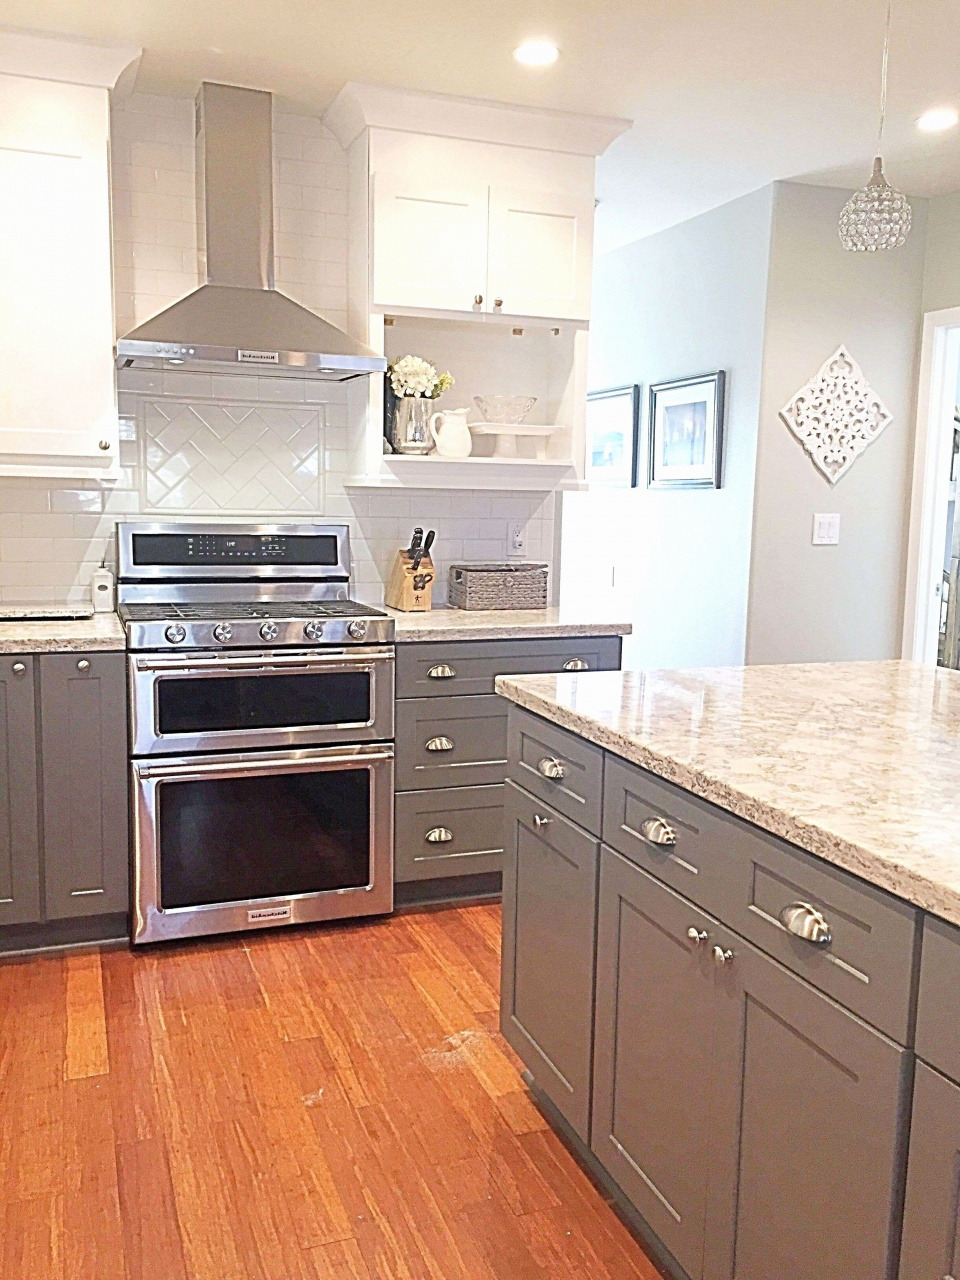 Kitchen Cabinet Doors Lowes Fresh Lowes Kitchen Cabinets White – is the Festive Bake Outyet